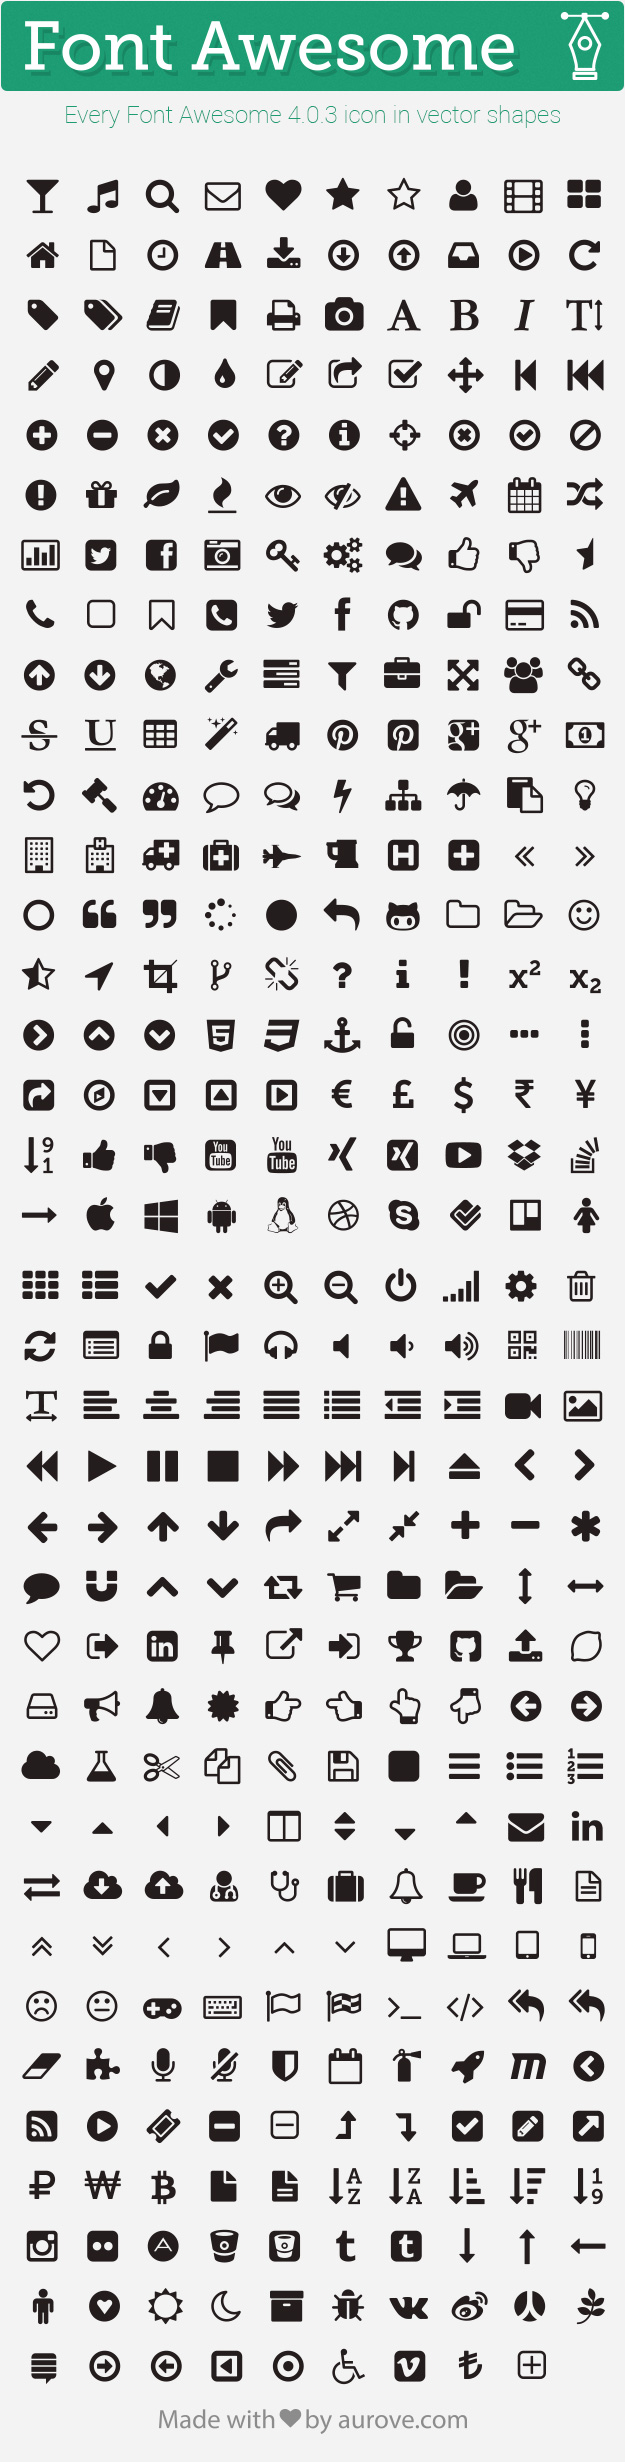 Photoshop Font Awesome Icon